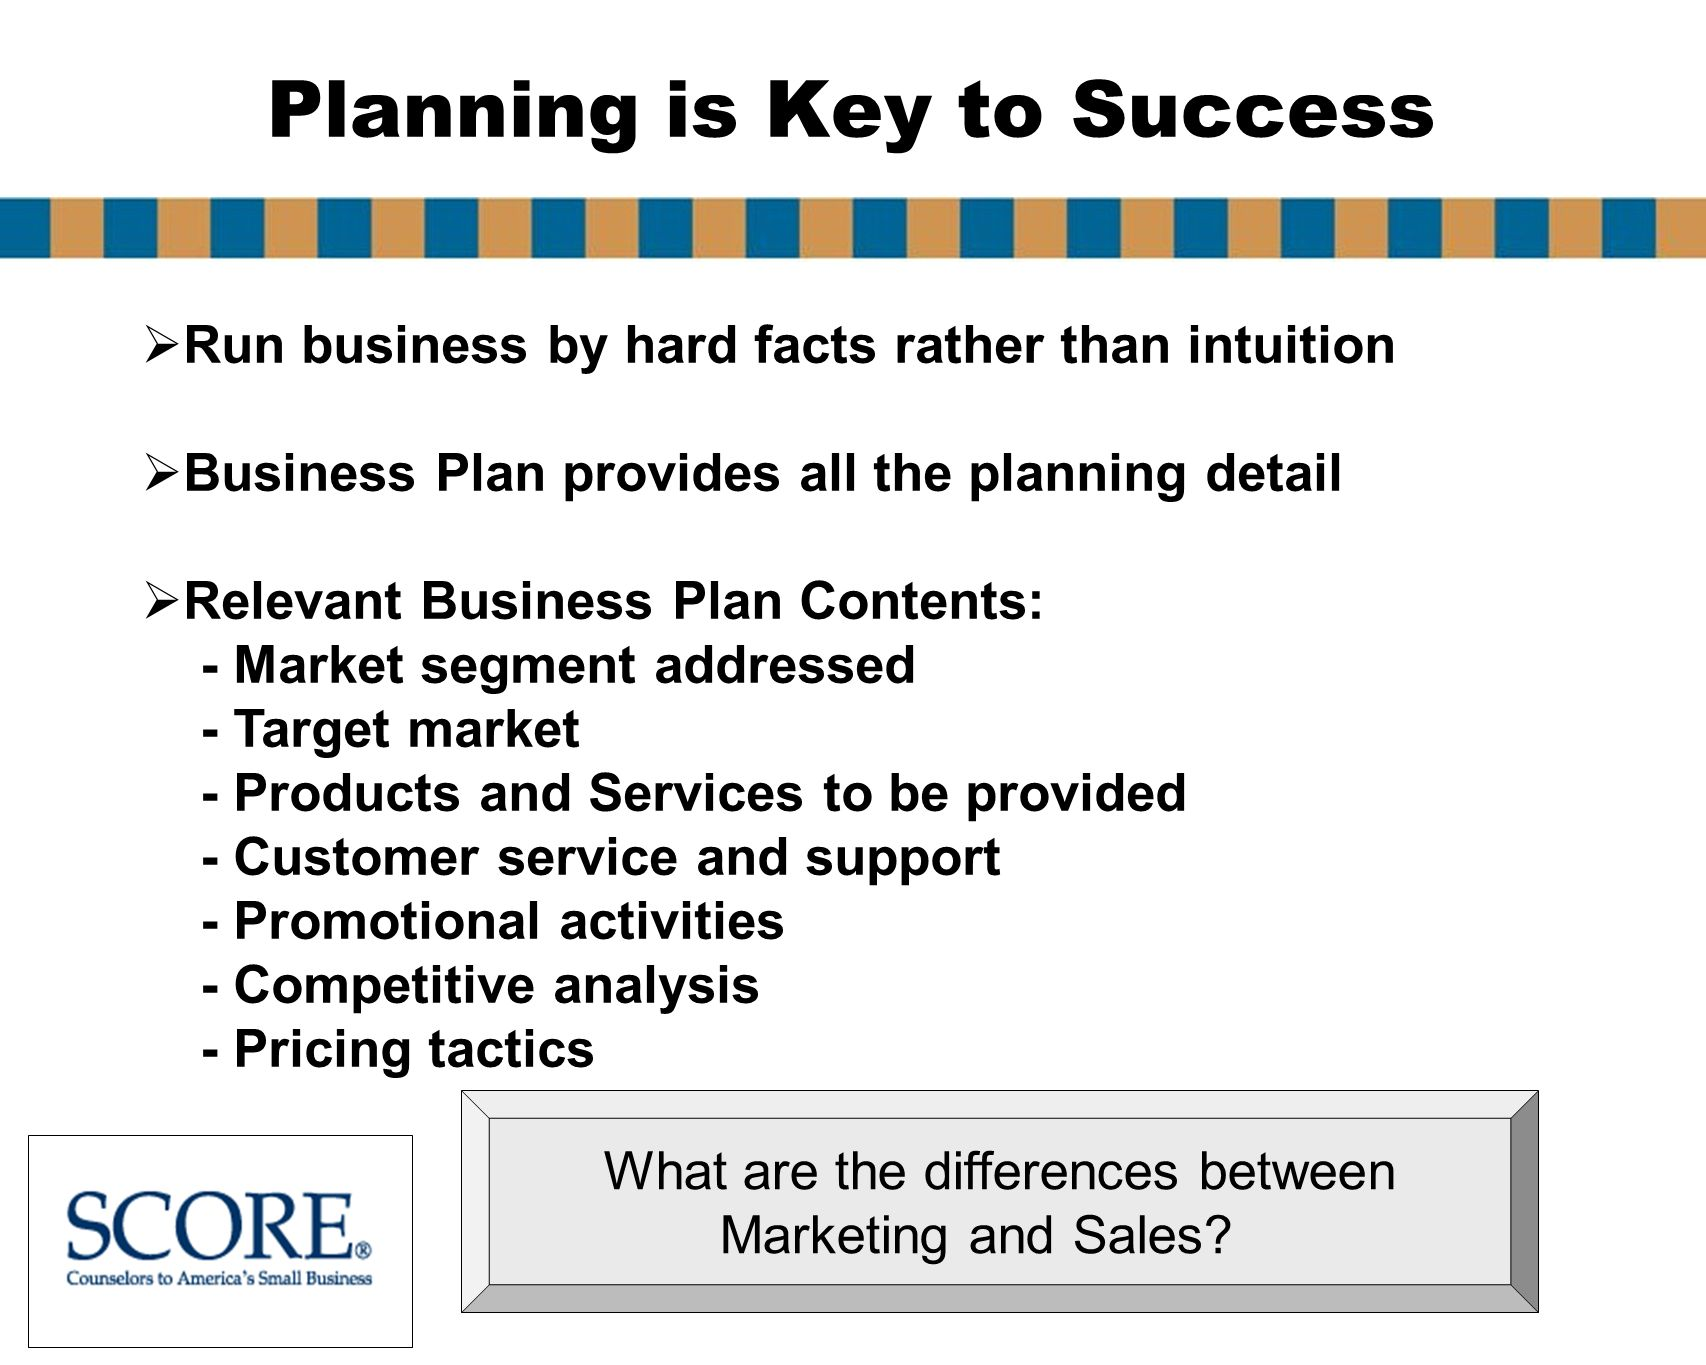 Score Business Plan Help